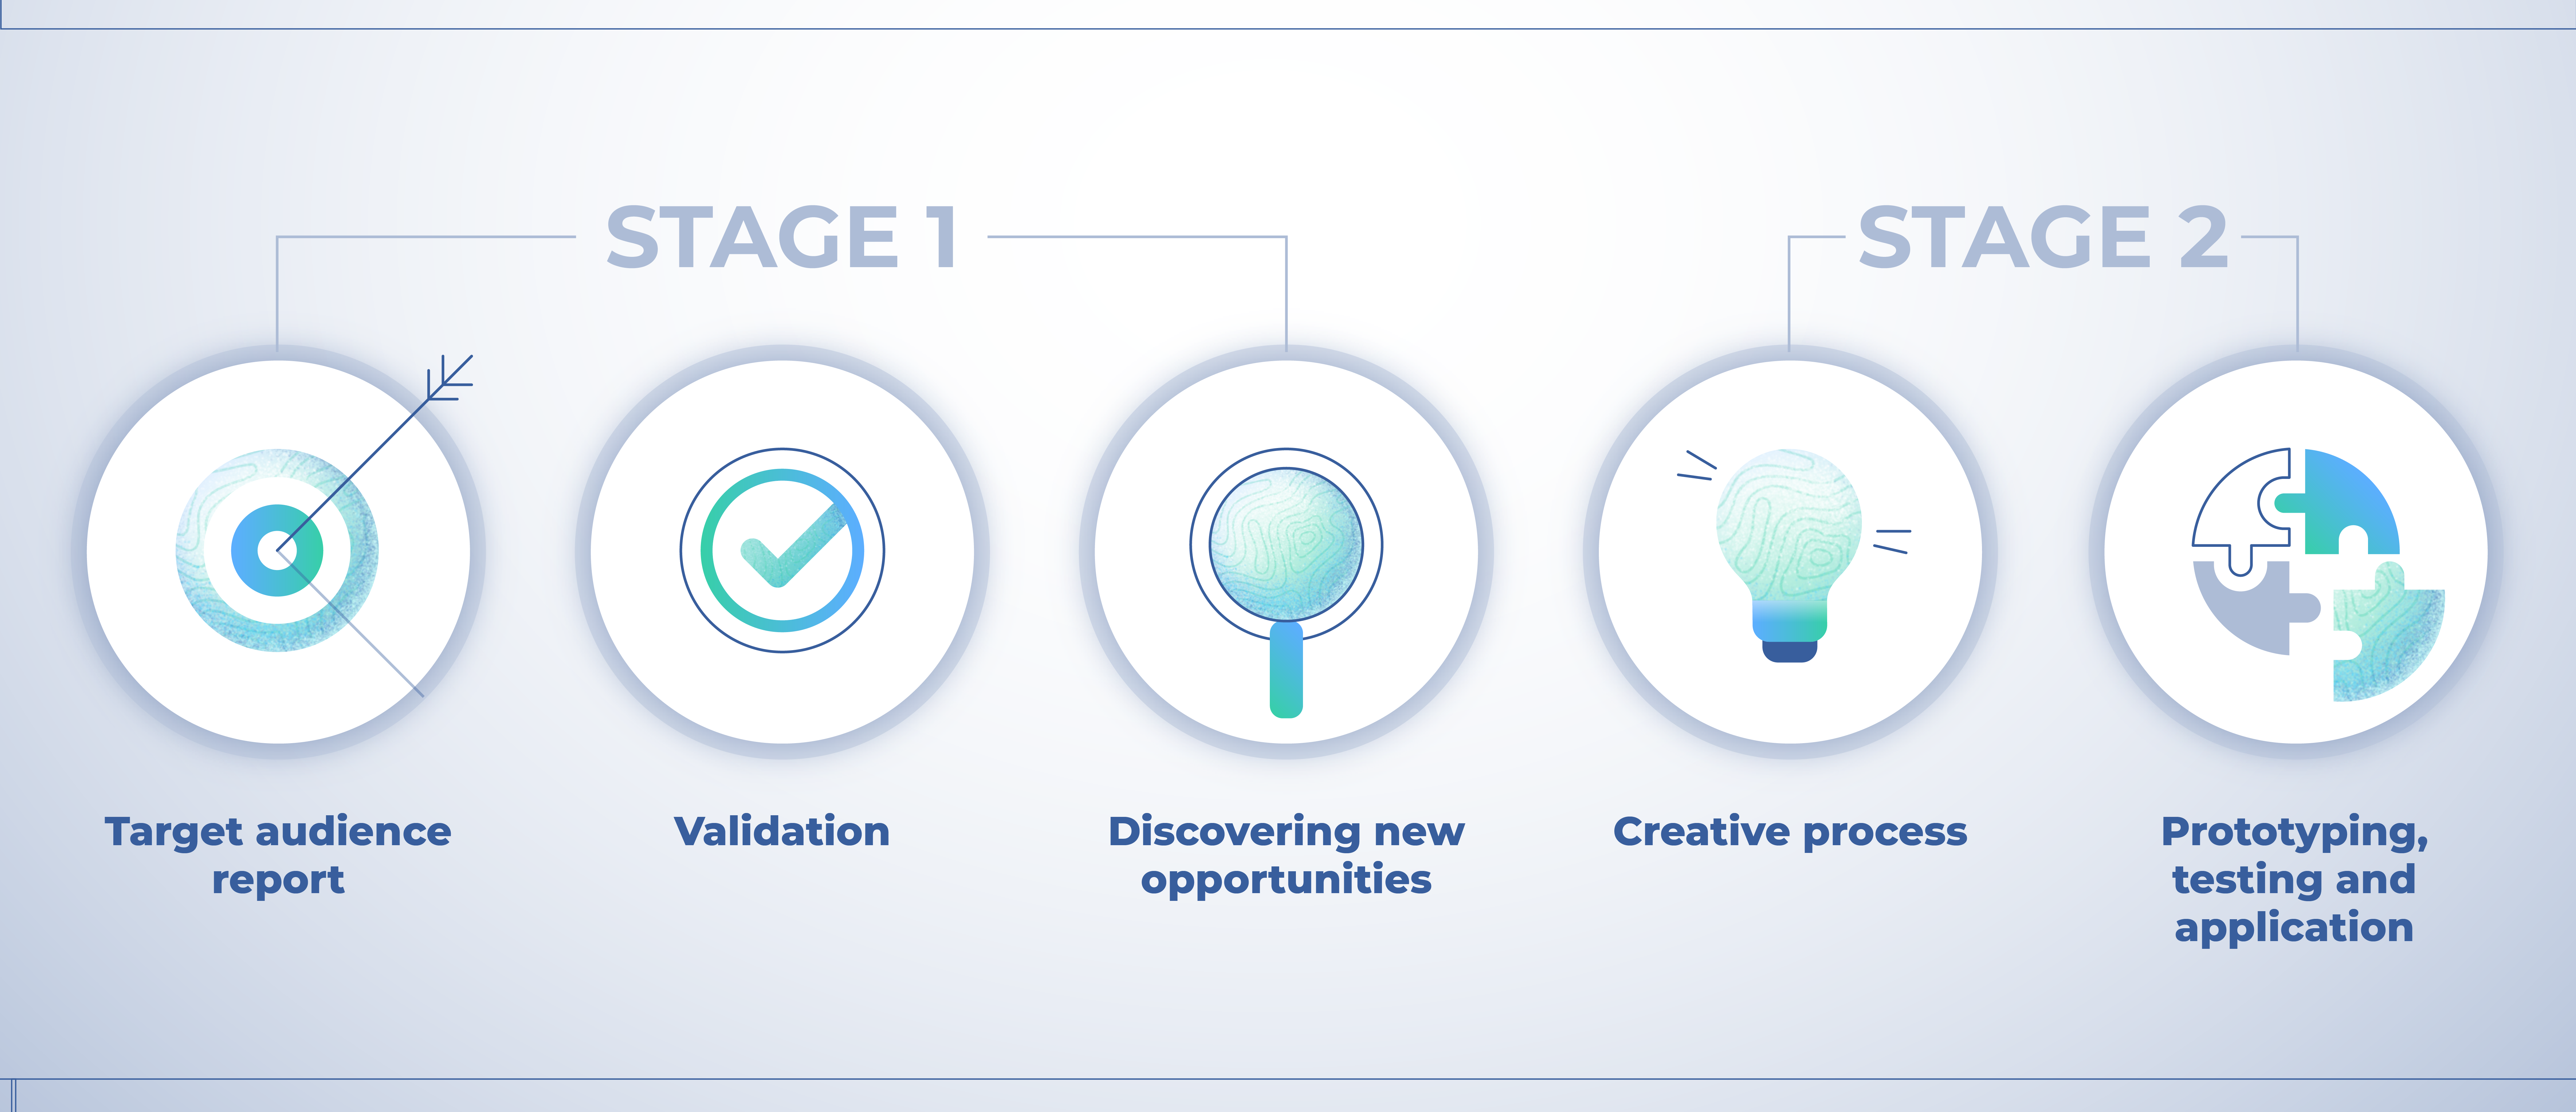 Design thinking to go deeply of the content.